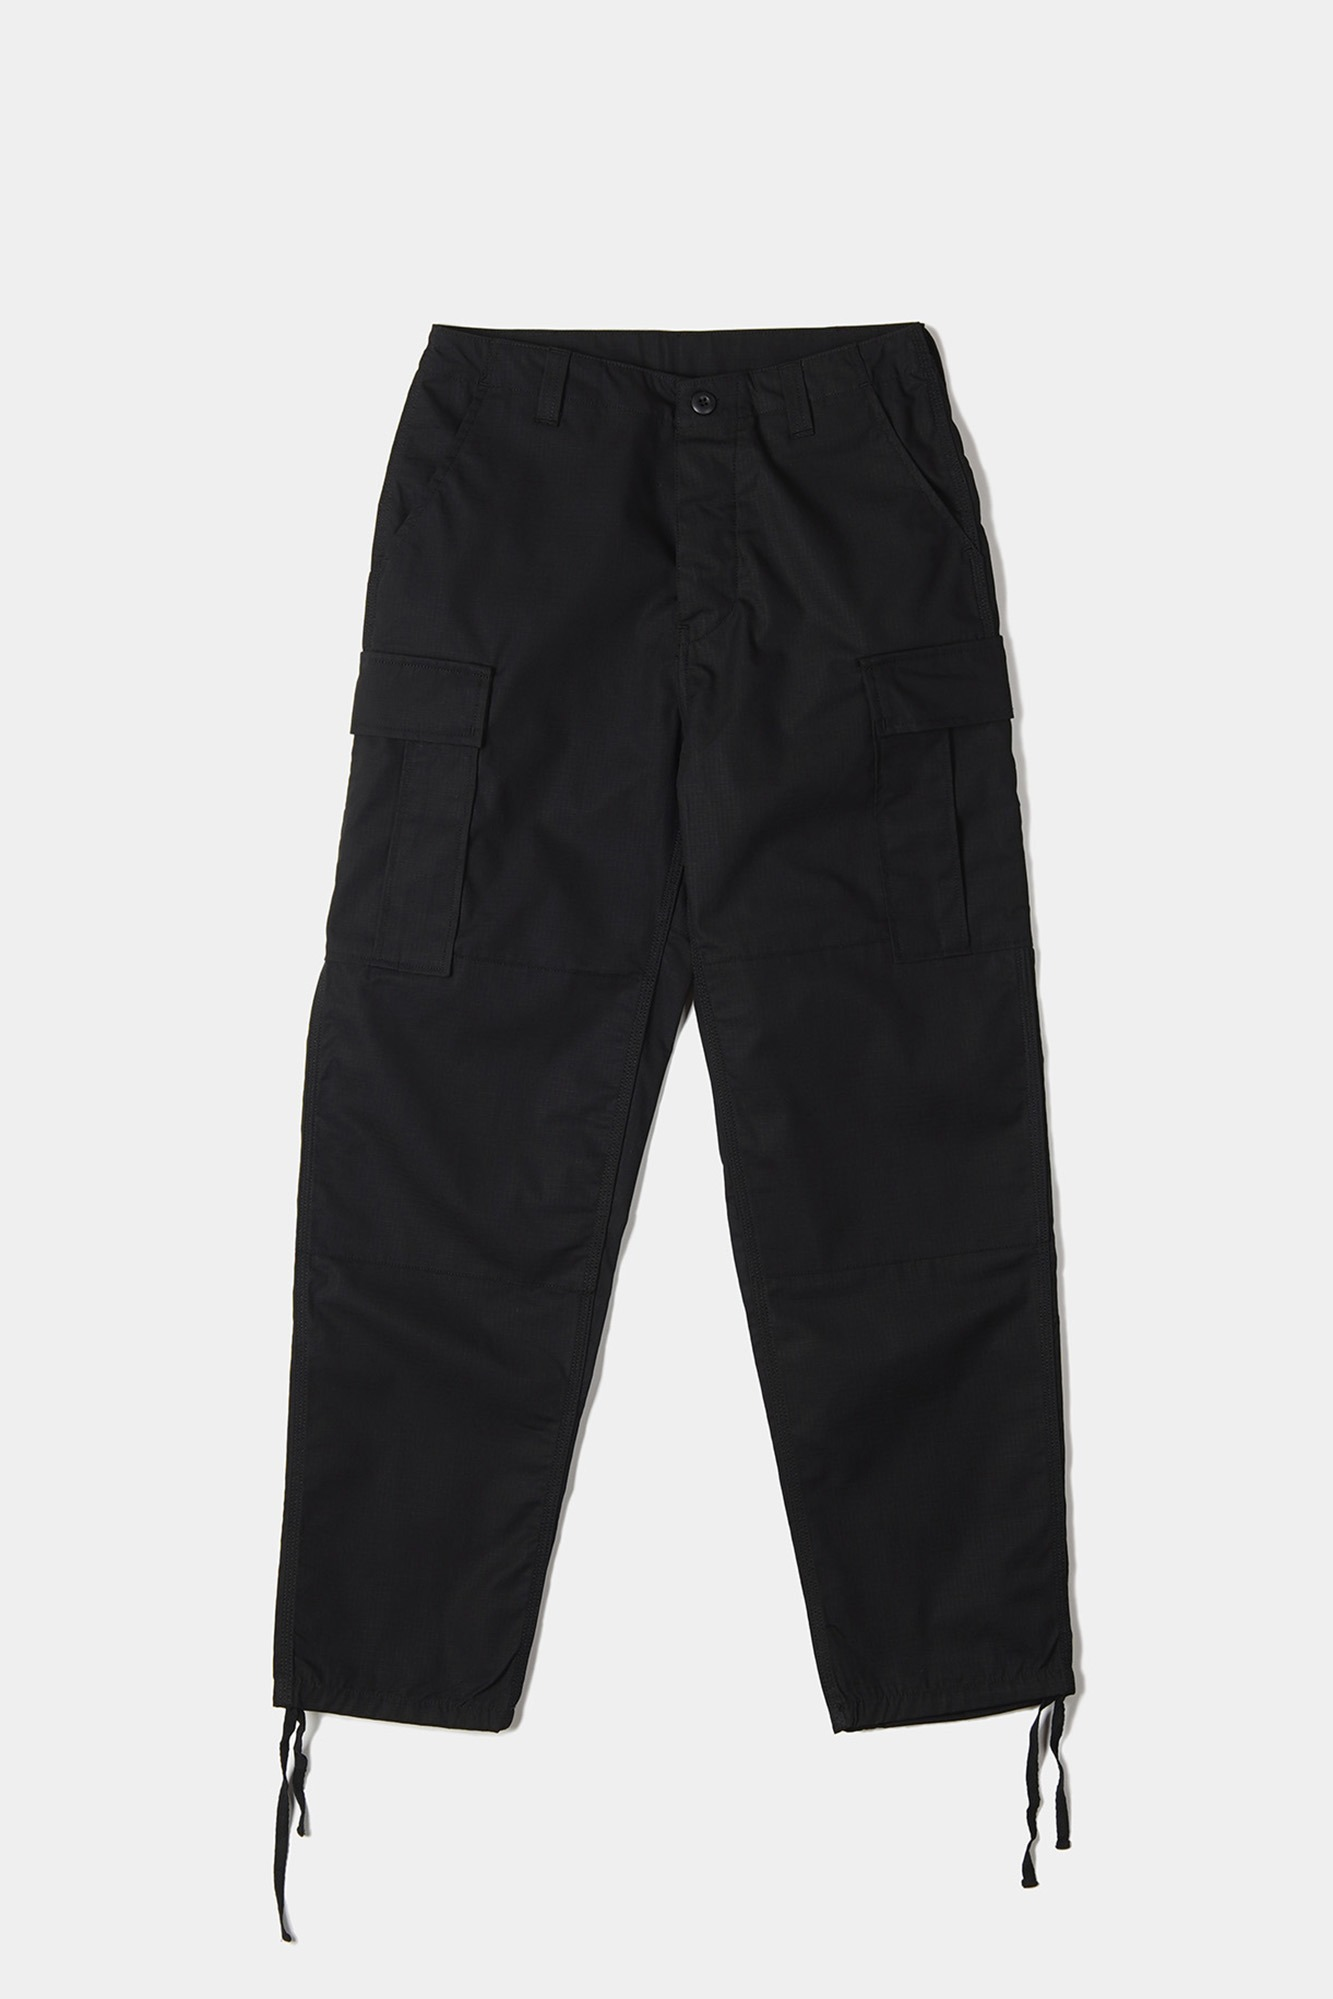 "STAN RAY Cargo Pants ""Black NYCO"""